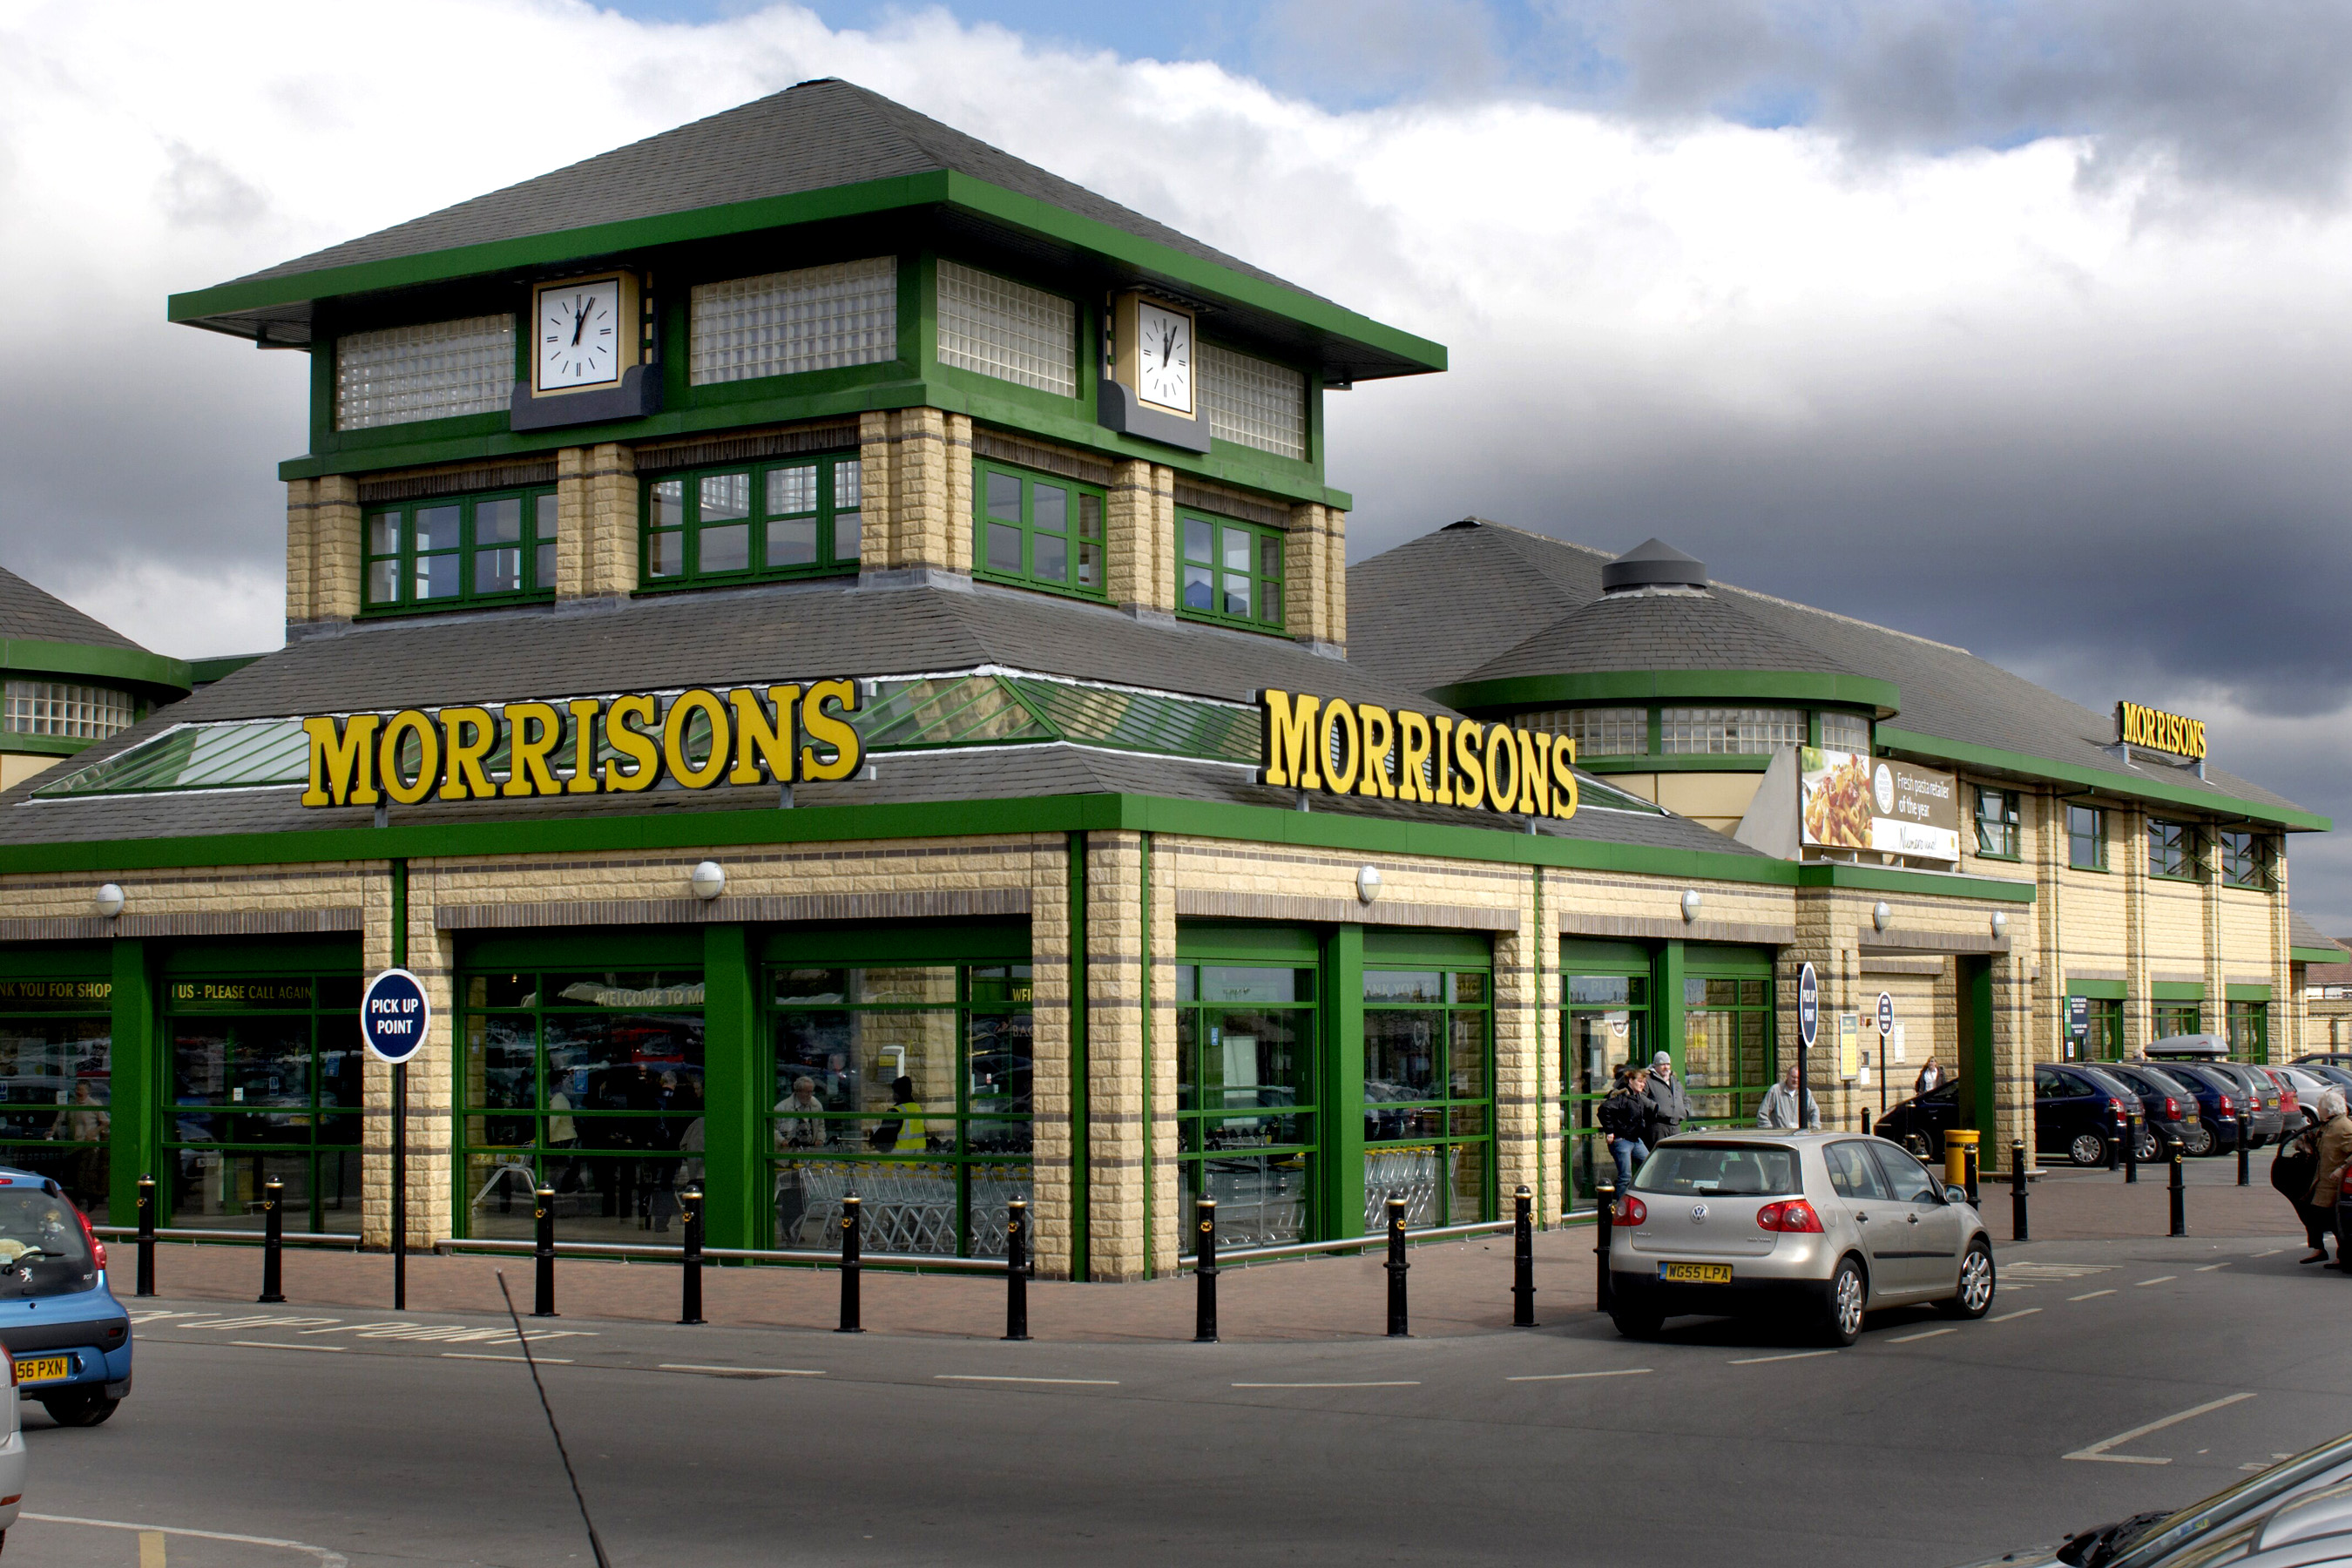 United Kingdom court rules Morrisons liable in staff data breach case